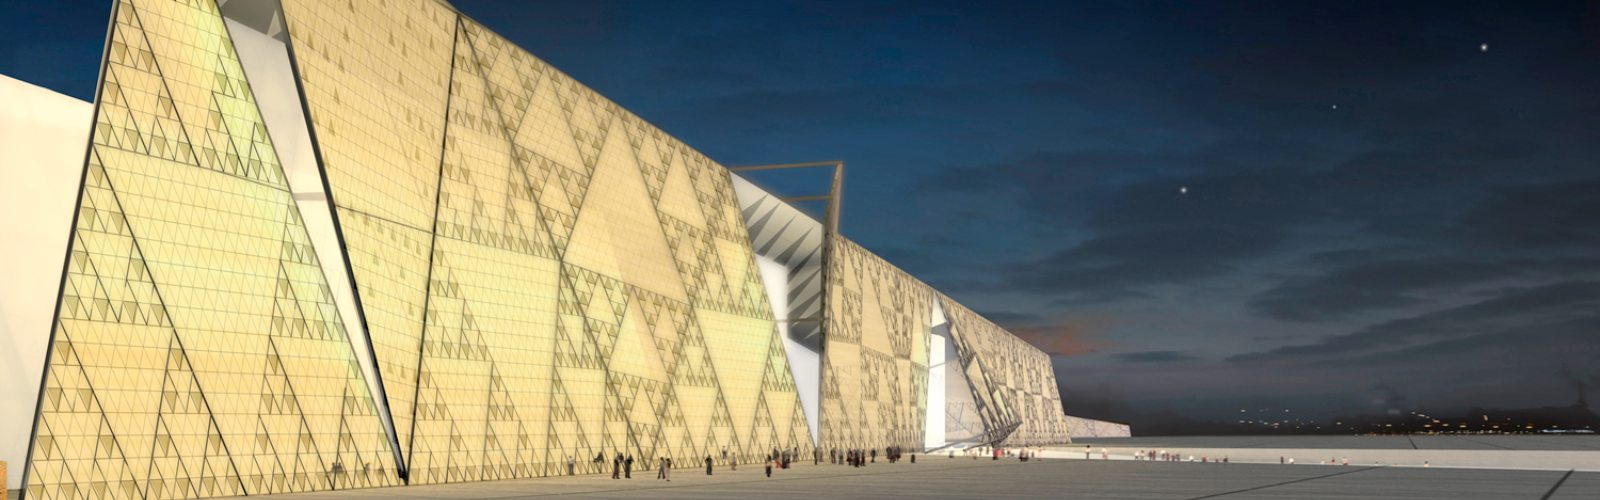 Grand Egyptian museum opening